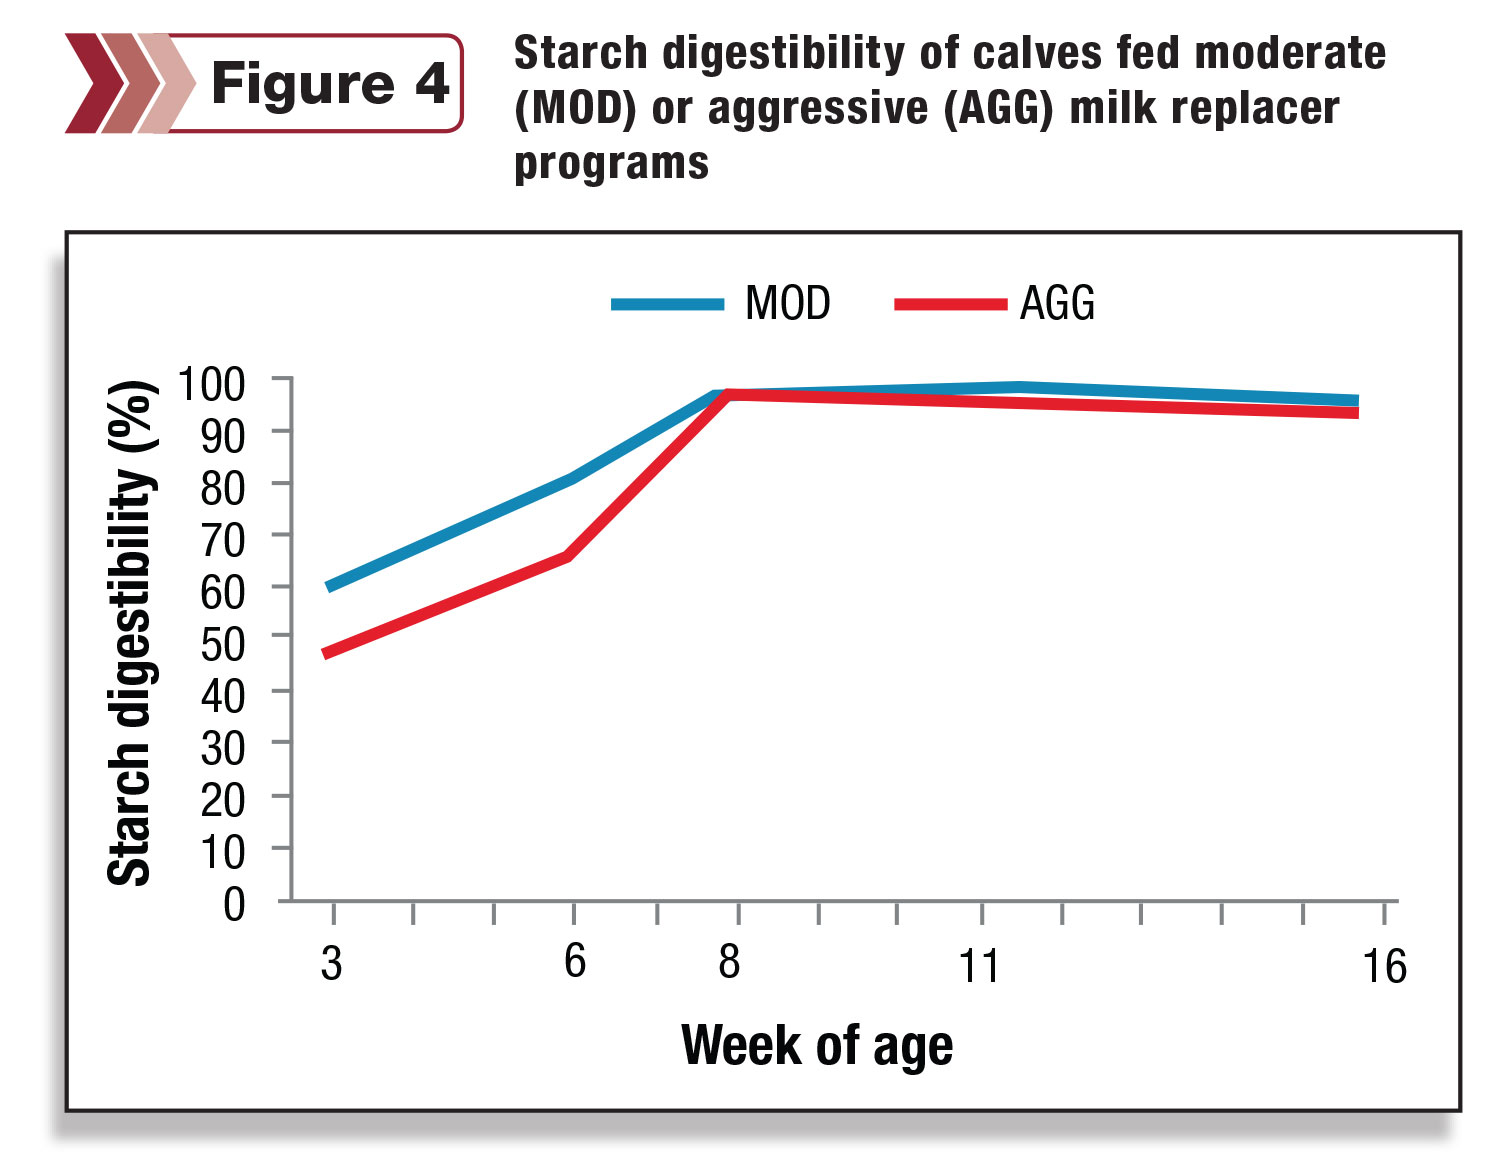 Starch digestibility of calves fed moderate or aggressive milk replacer